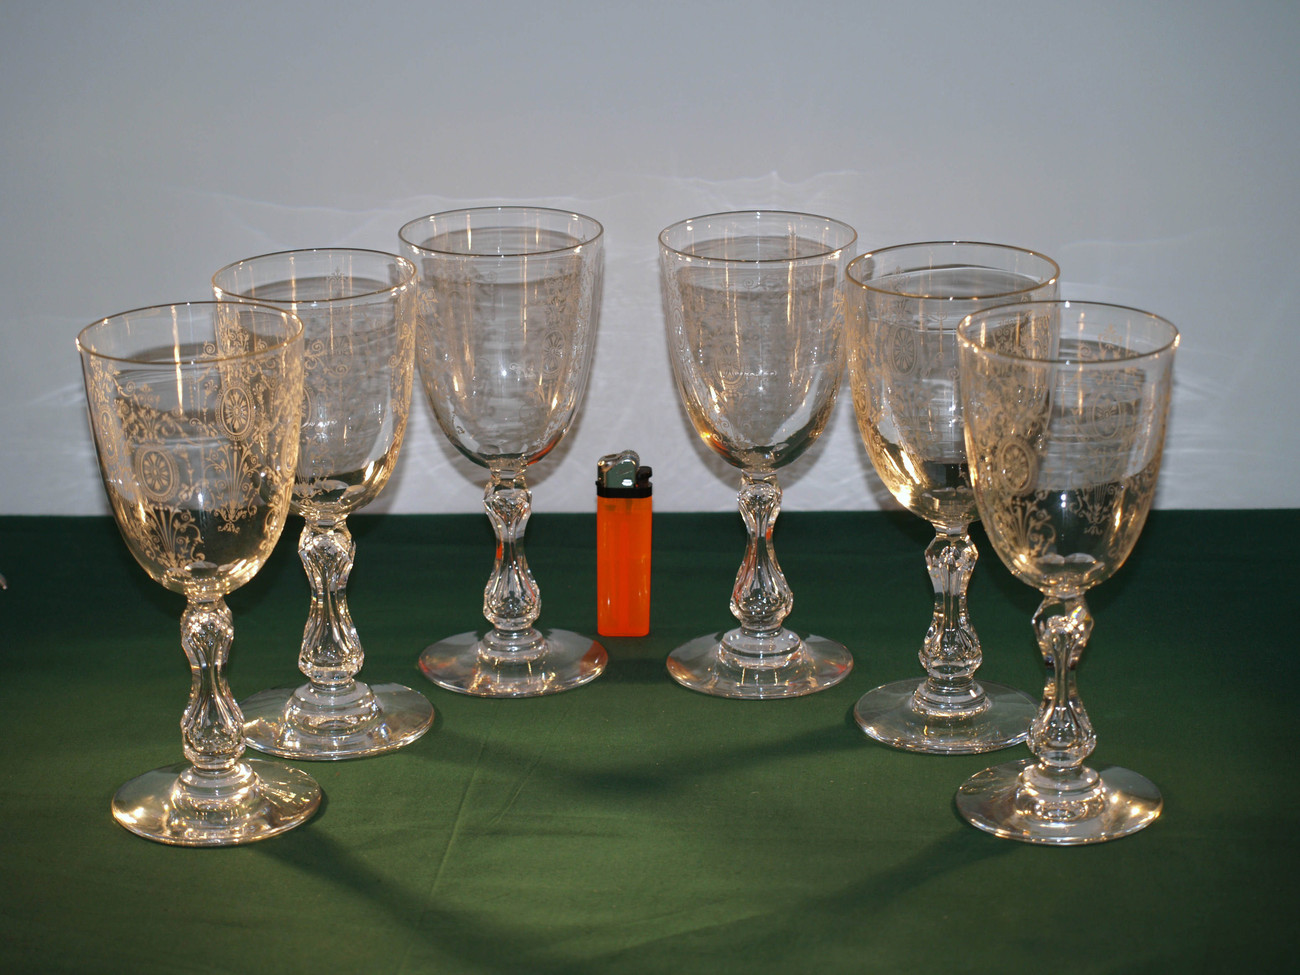 Crystal Stemware Wine Glasses A Set Of 6 Antique Crystal Cut And Etched Wine Glasses